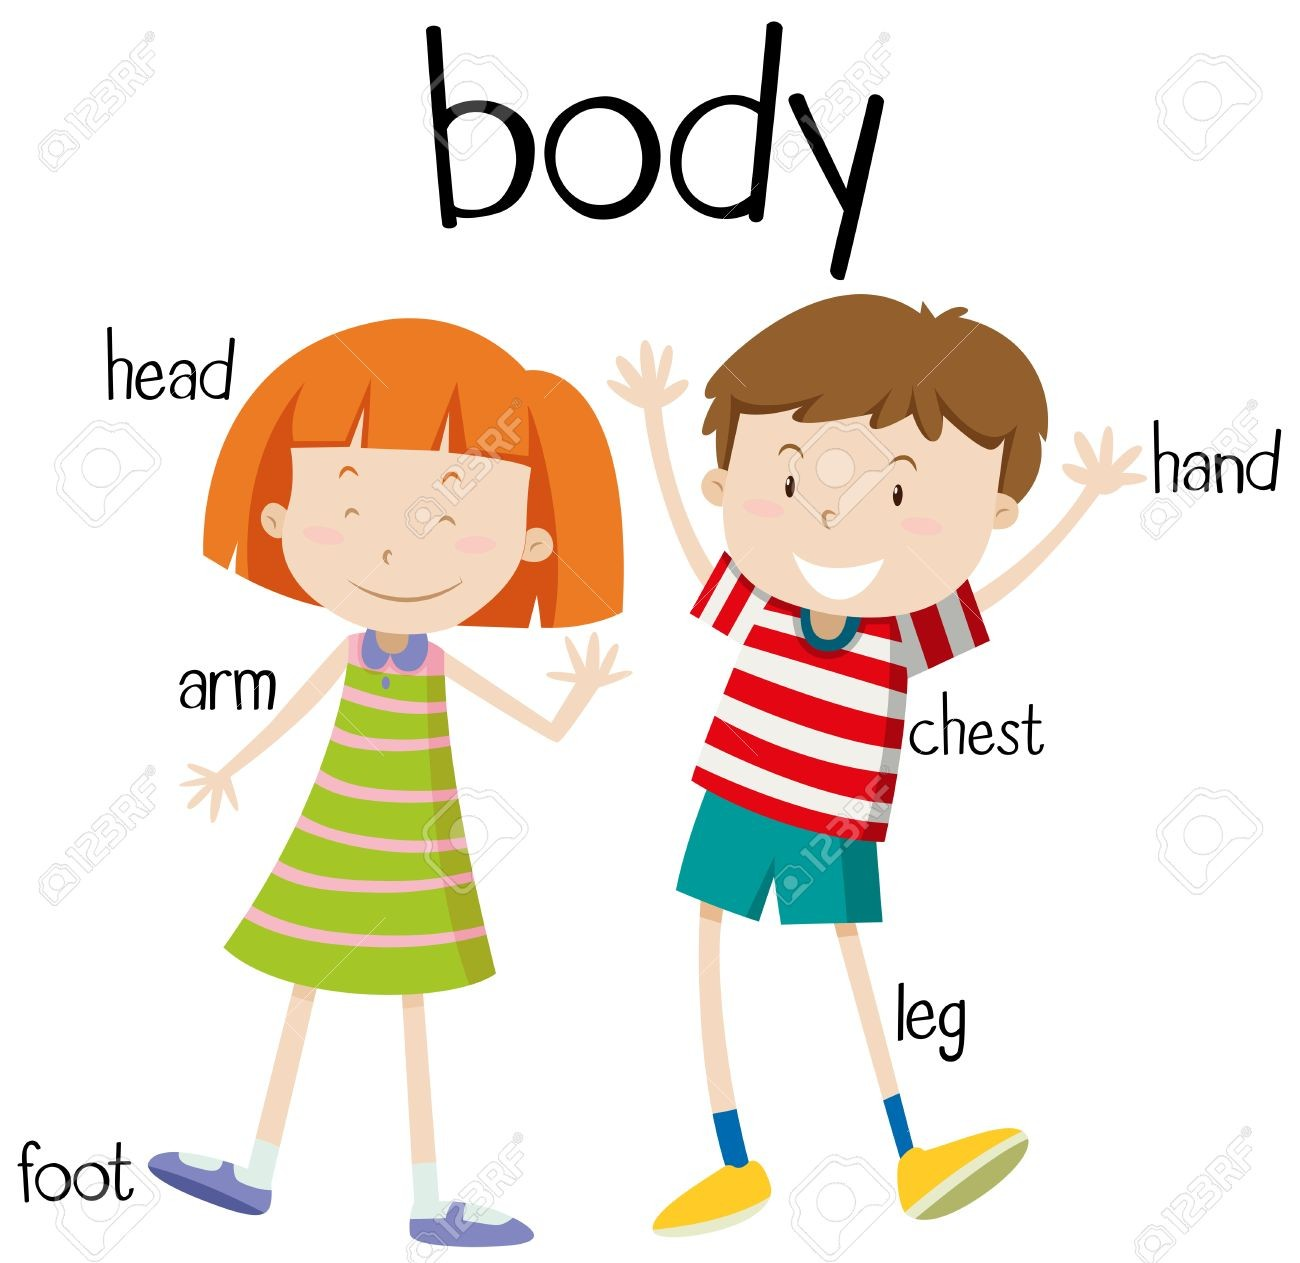 Free clipart body parts vector transparent On Free Clipart Of Body Parts 53197412 Human Diagram Illustration ... vector transparent